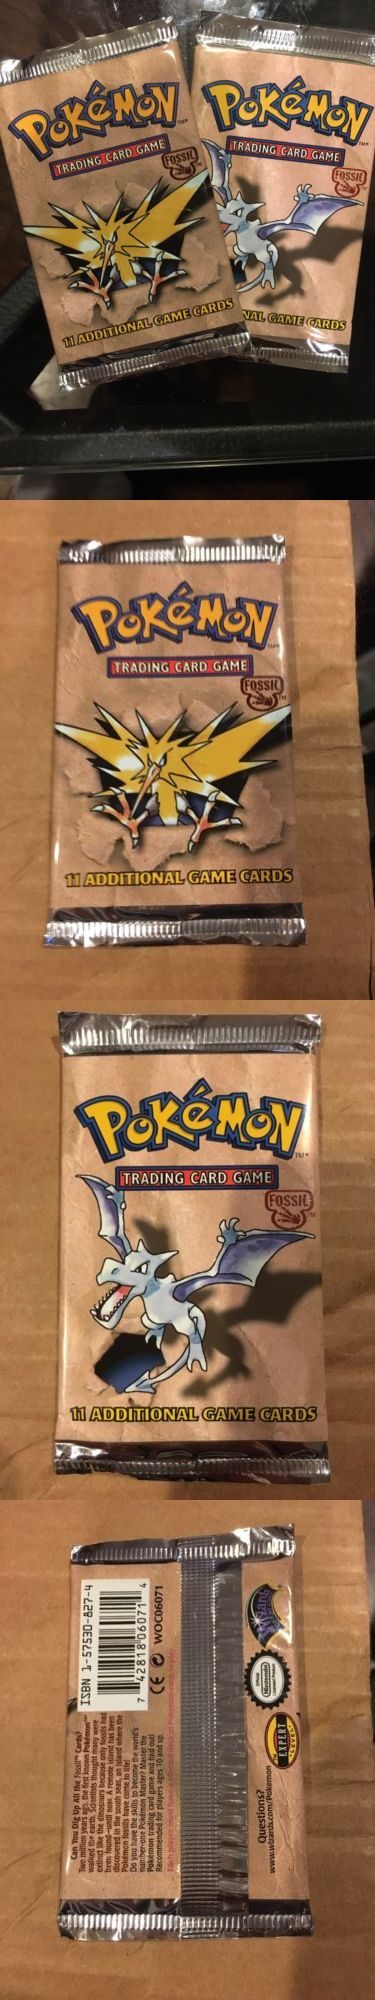 Pok mon Sealed Booster Packs 4301: (2) Pokemon Fossil Booster Pack, Unlimited 1999 - Factory Sealed! Box Fresh! -> BUY IT NOW ONLY: $32 on eBay!